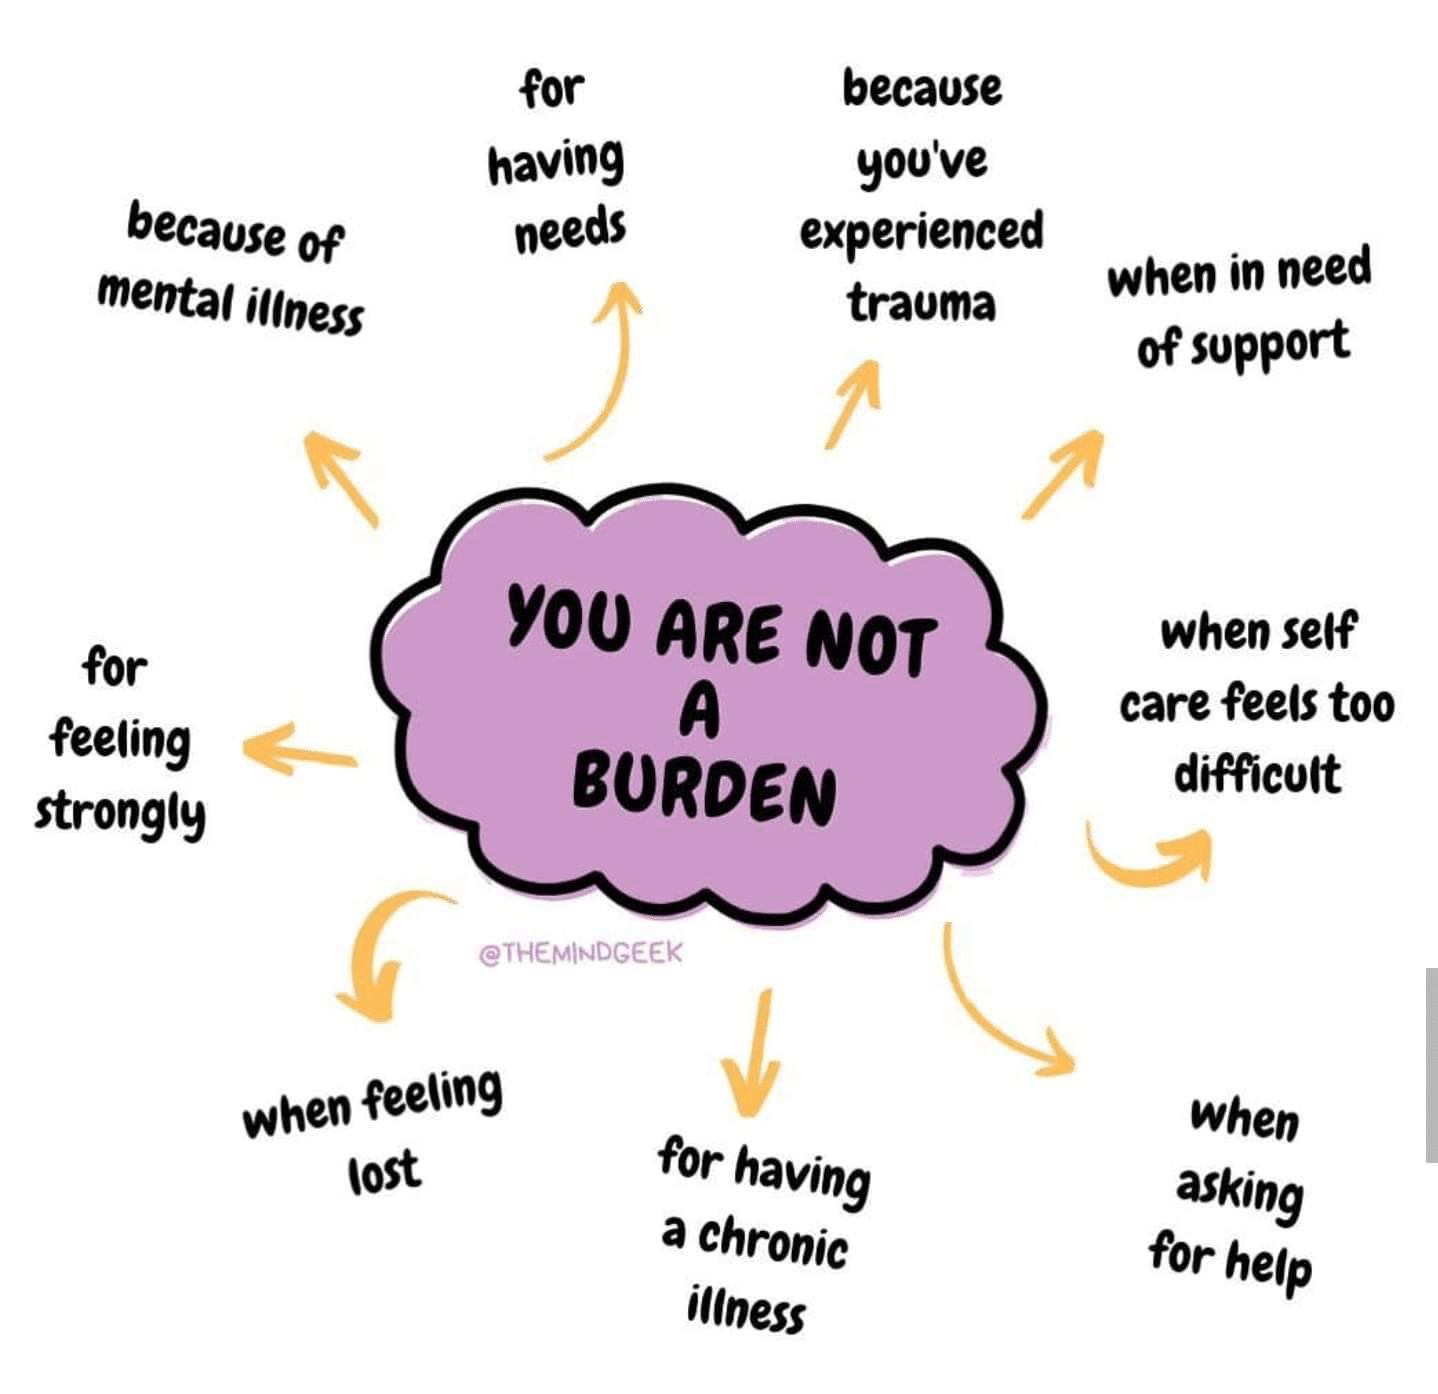 cute wholesome-memes cute text: for having needs because of mental illness for feeling strongly because you've experienced when in need trauma 41 YOO ARE NOT BORDEN @THEMlNDGEEk when feeling lost for having a chronic illness of support when self care fee(s too difficult when asking for help